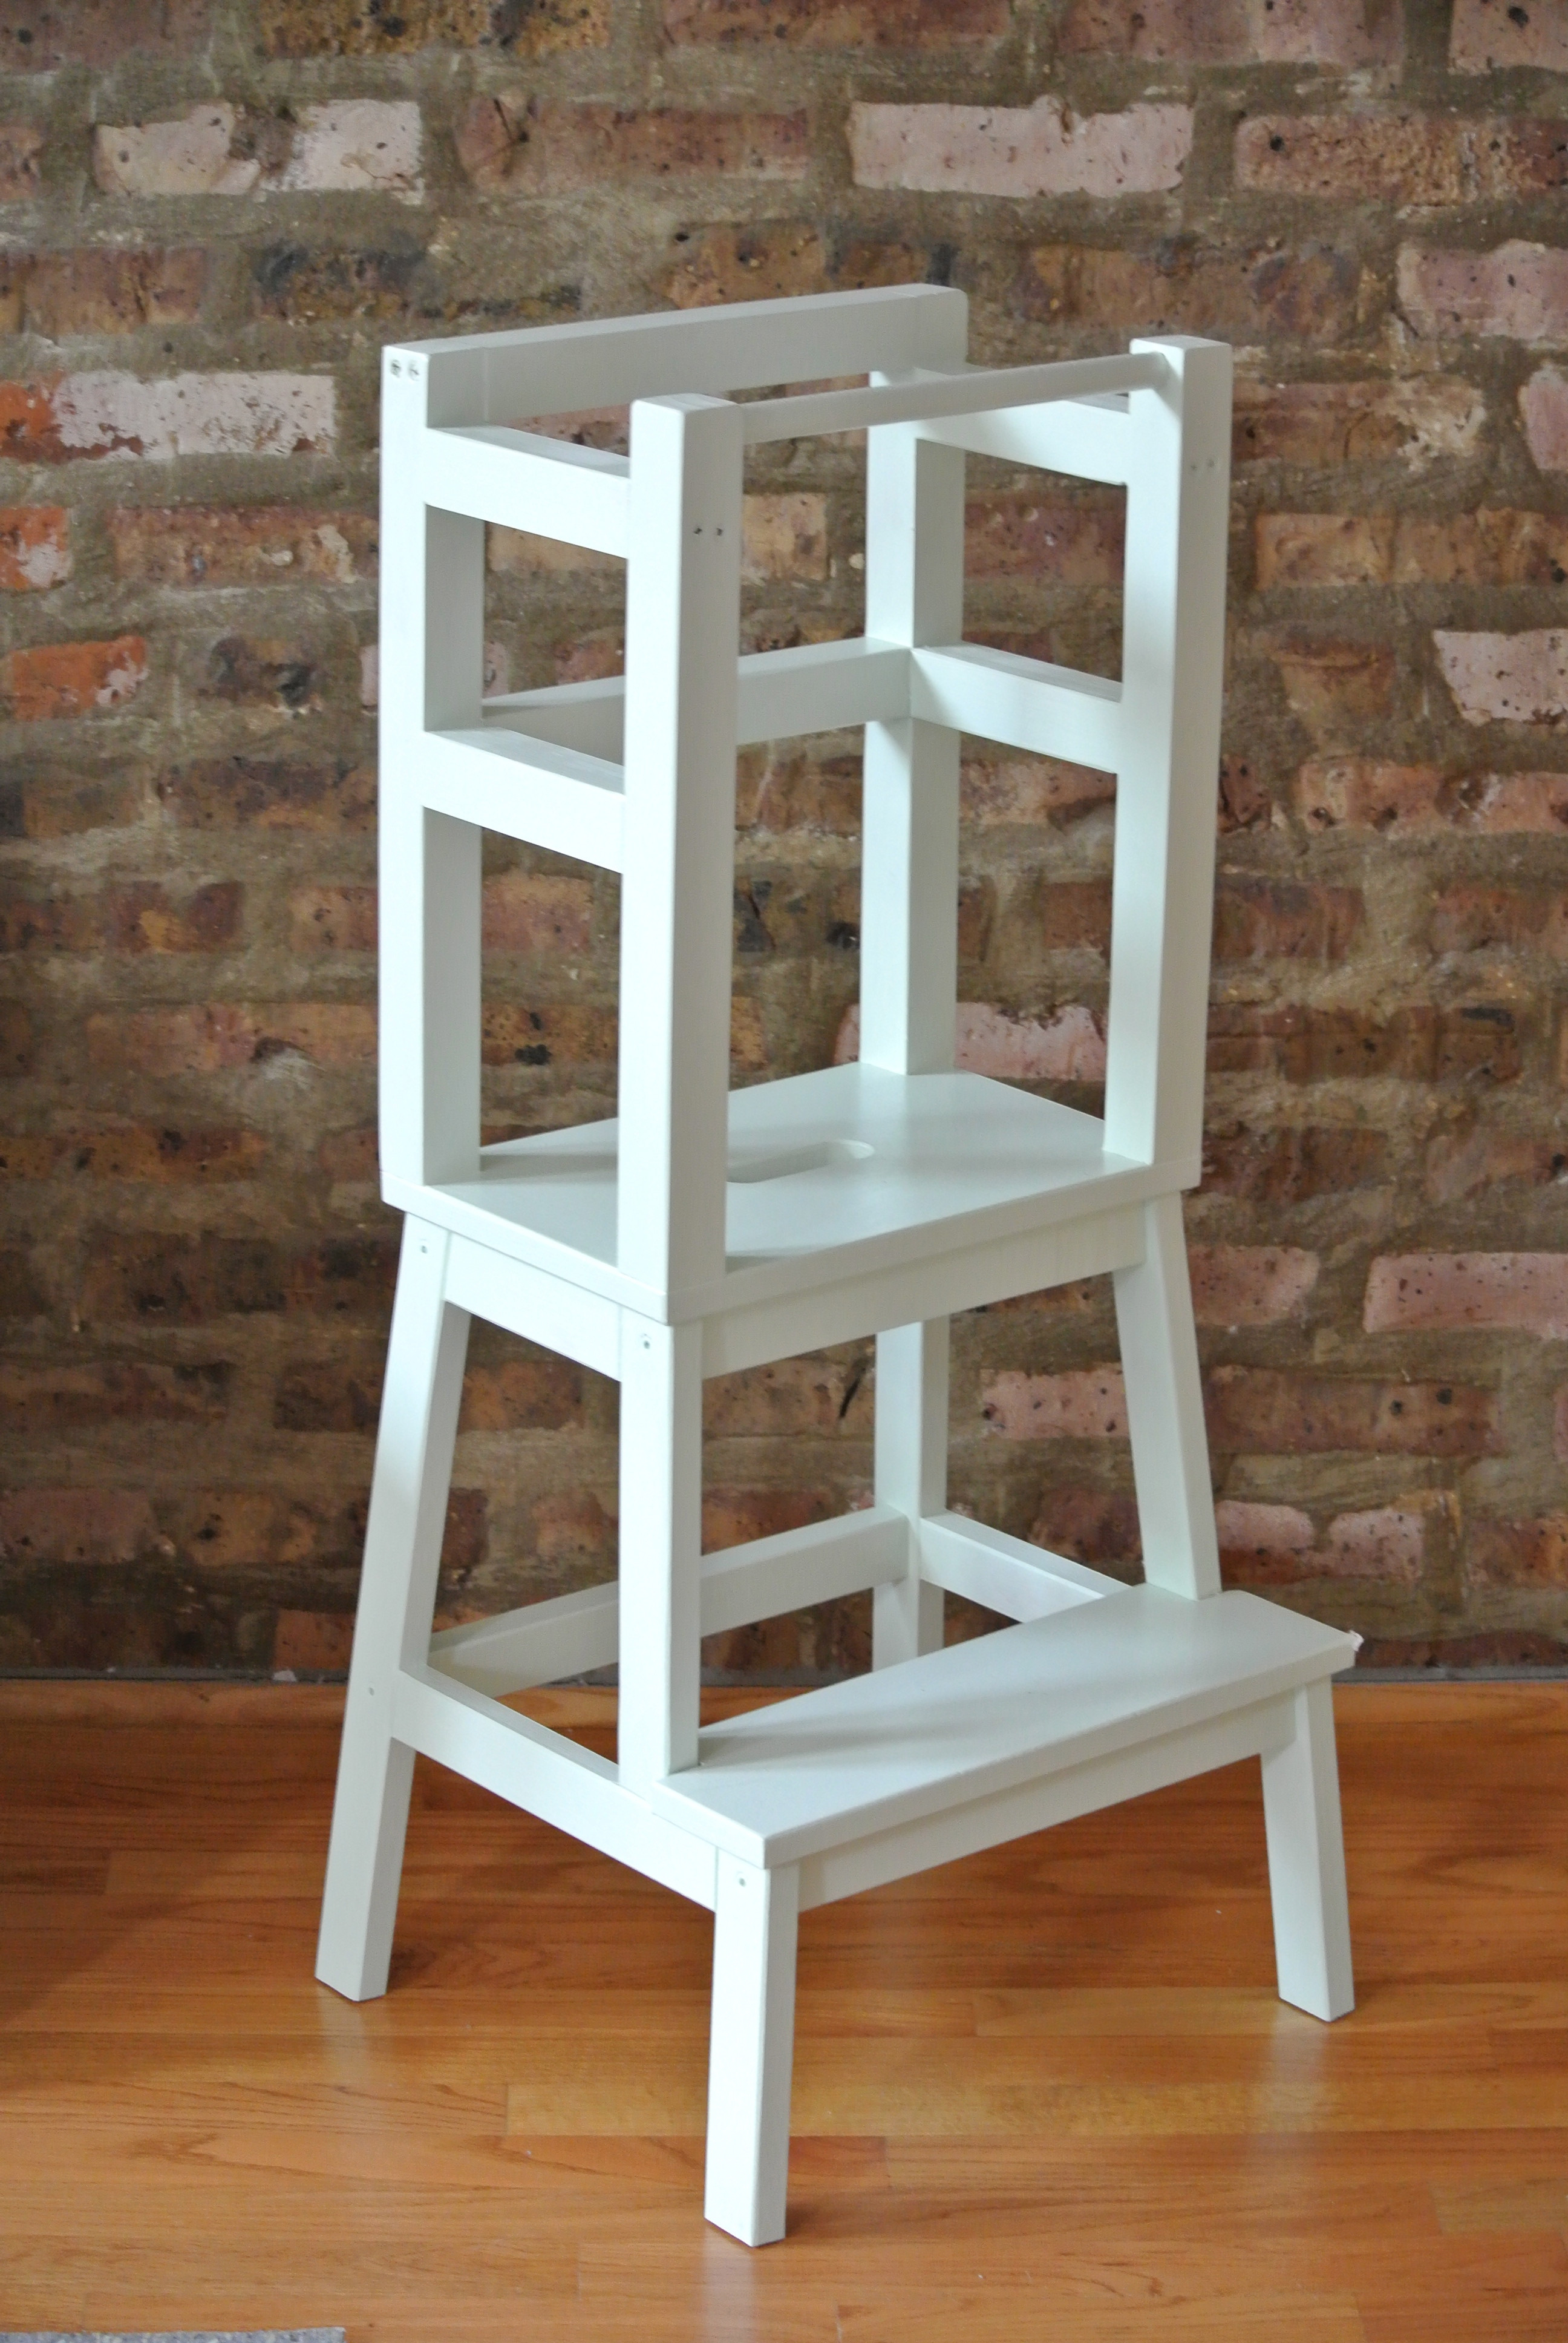 Best ideas about DIY Learning Tower . Save or Pin Learning Tower DIY – eFreeHand Now.